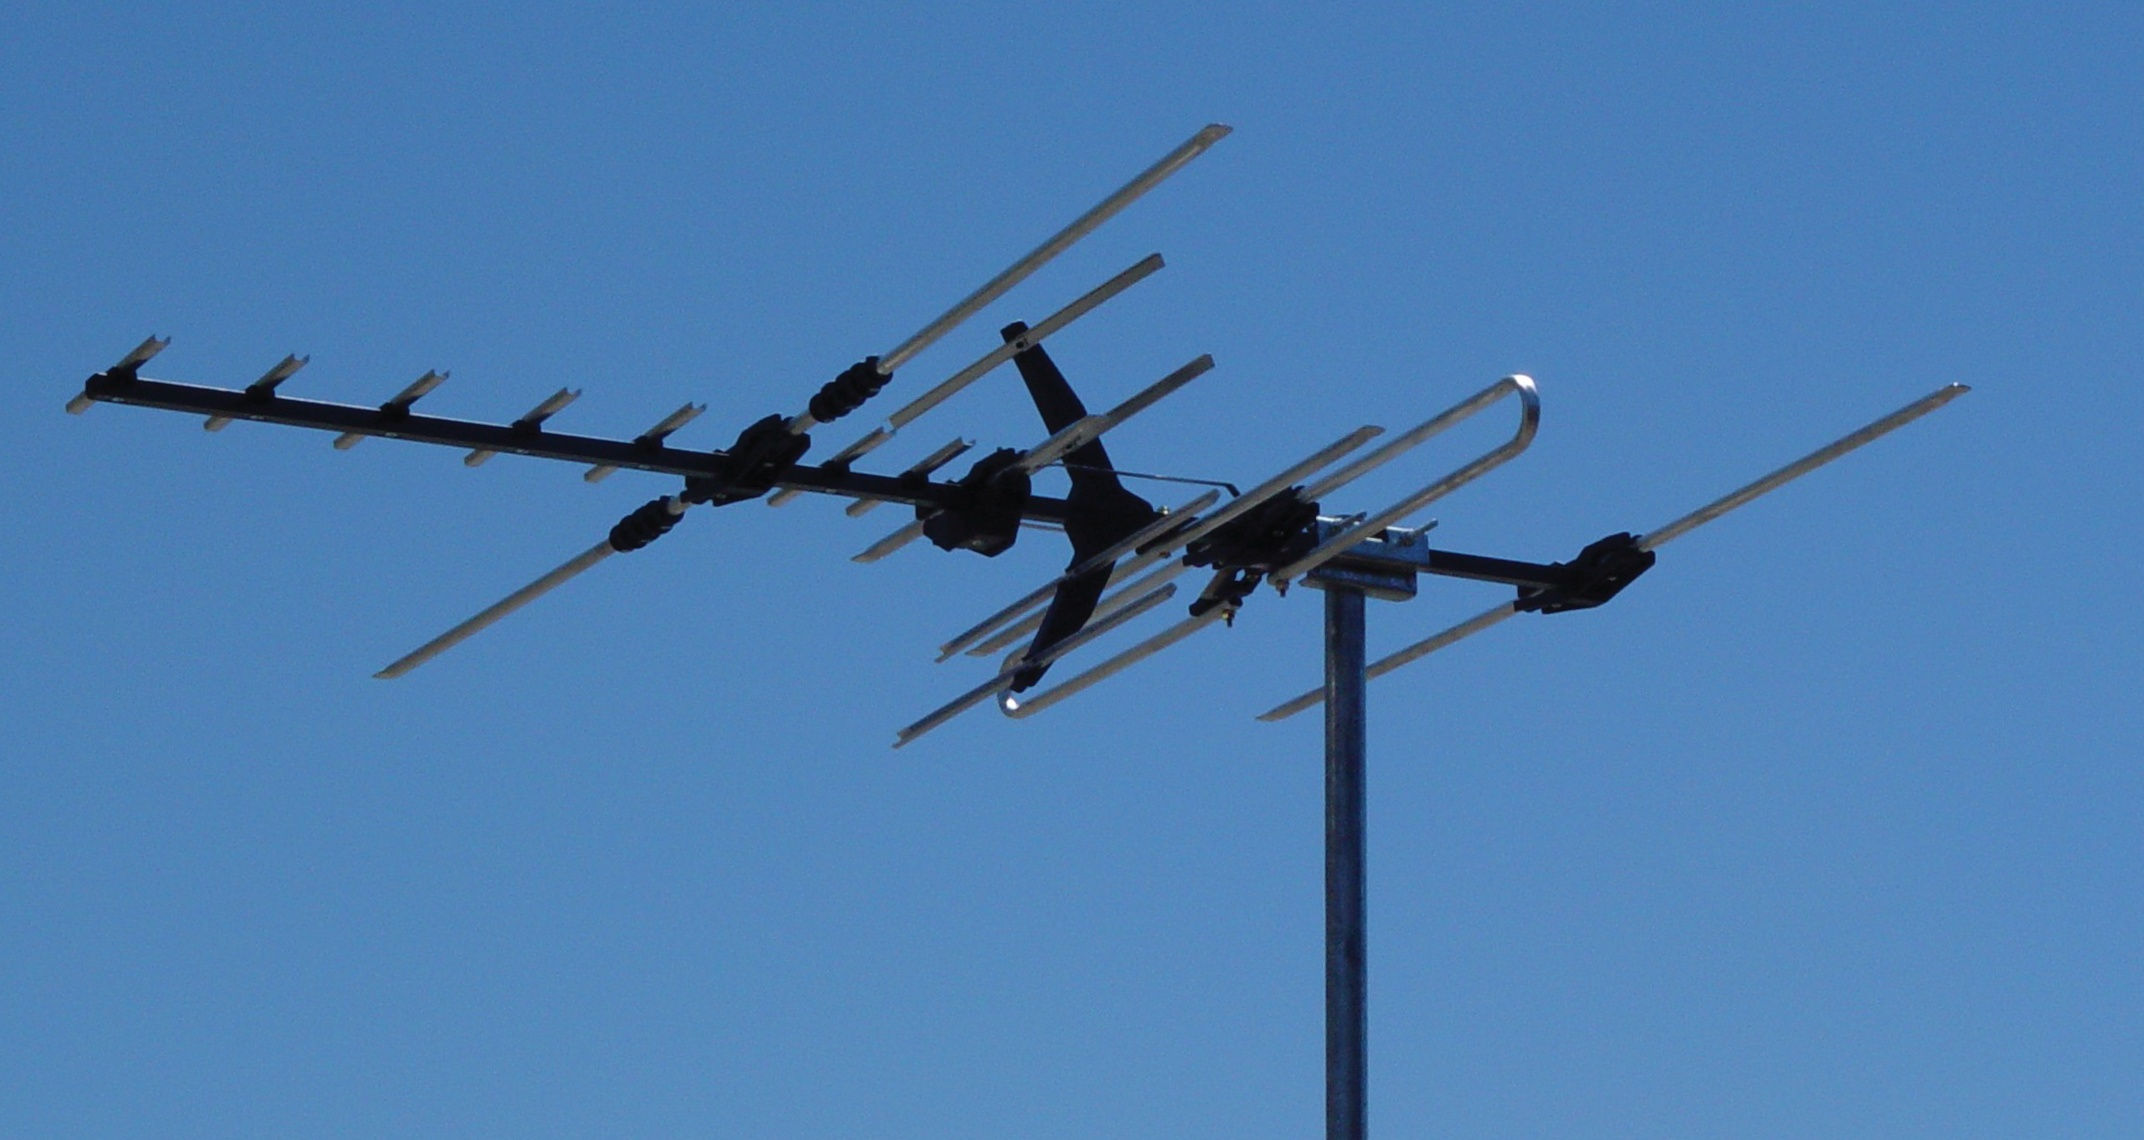 Better quality viewing through Antenna Installation Adelaide